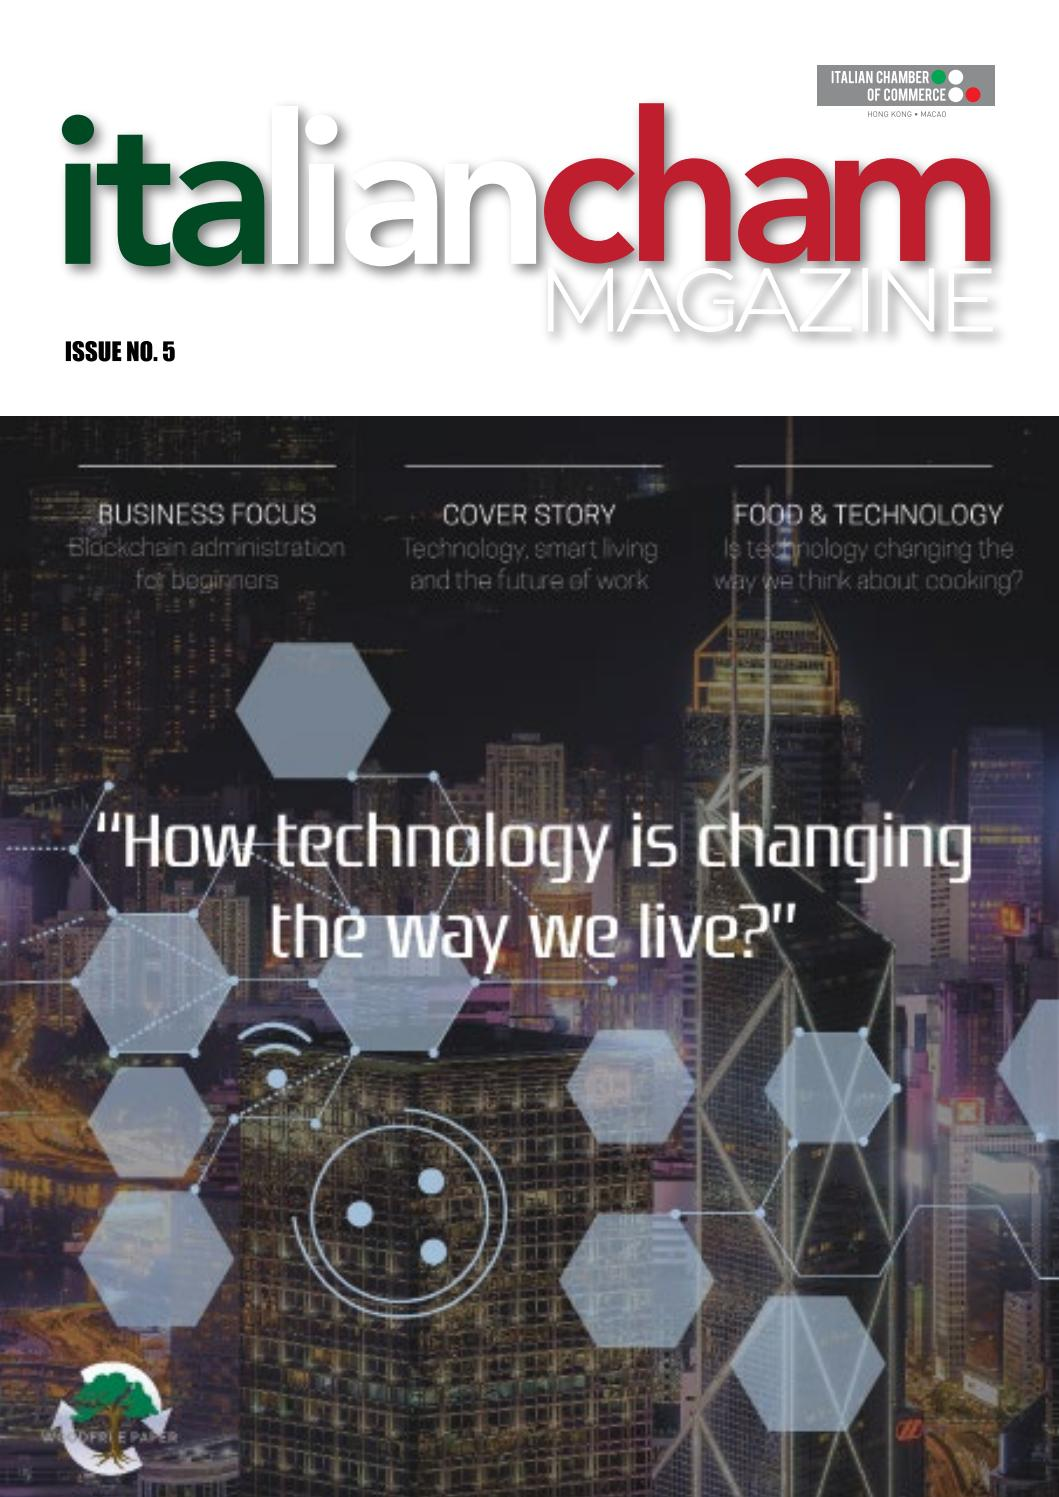 Ital Designs Hong Kong the italiancham magazine vol.5 by icchkmacao - issuu